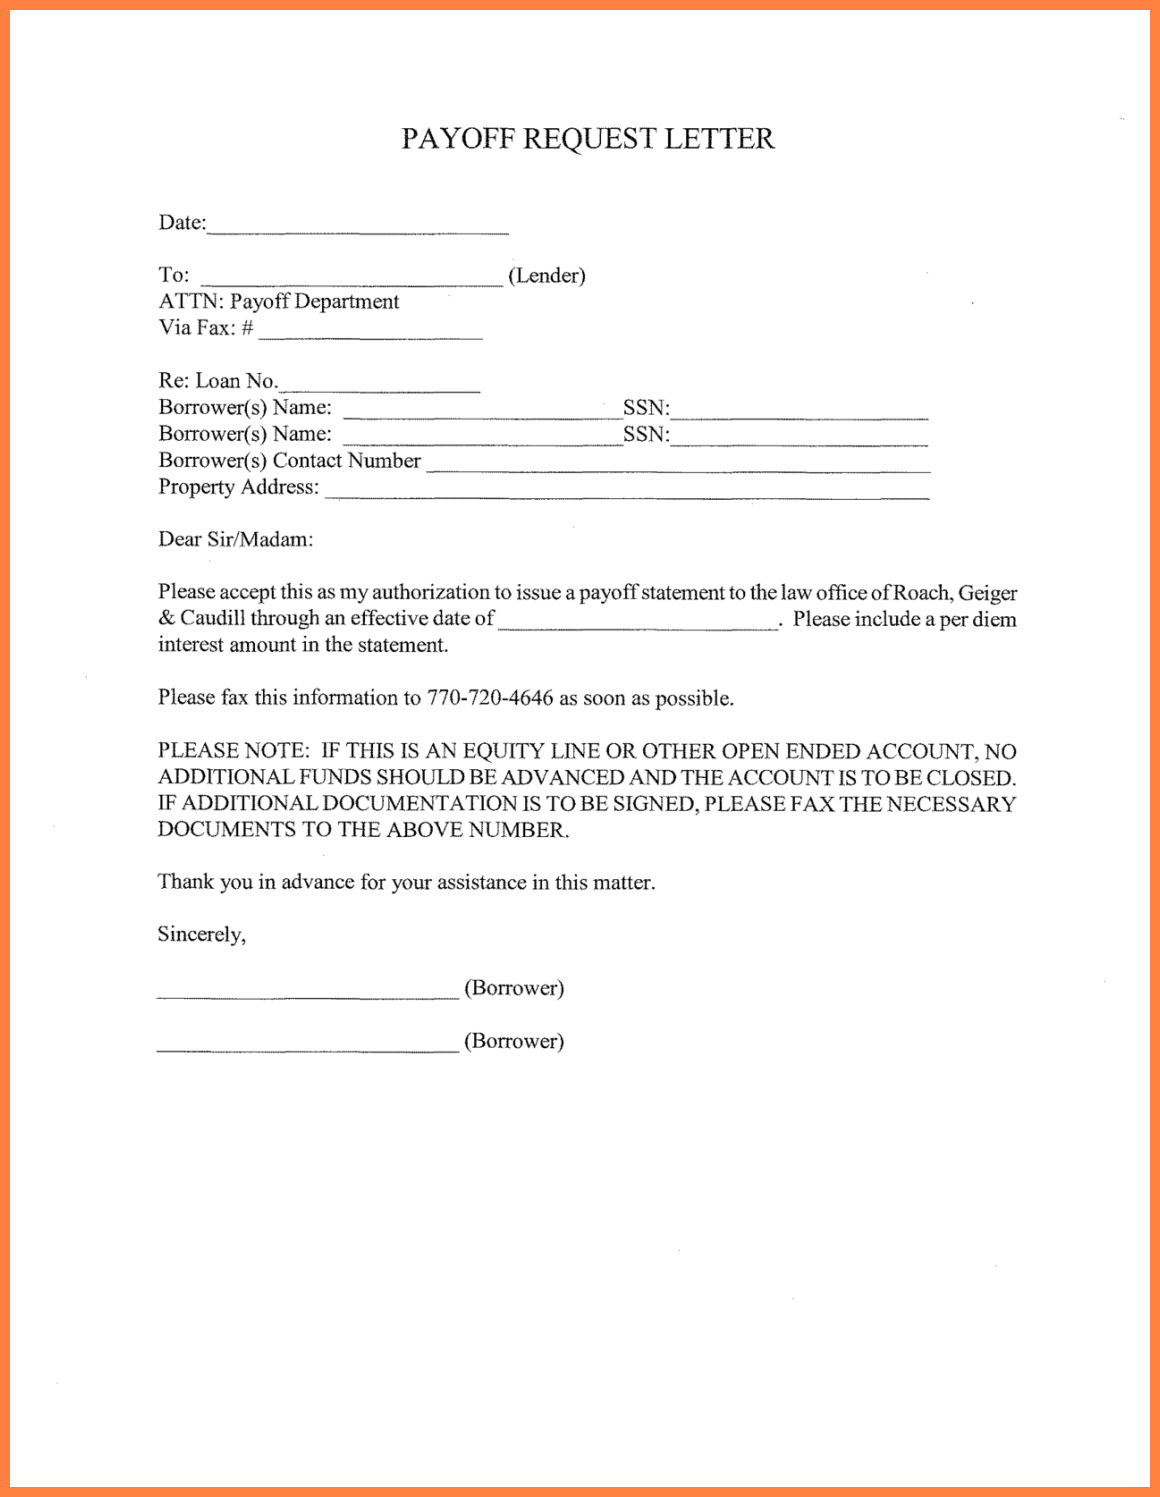 Salary Deposit Letter Format Statement Sample Template Pzjqcp